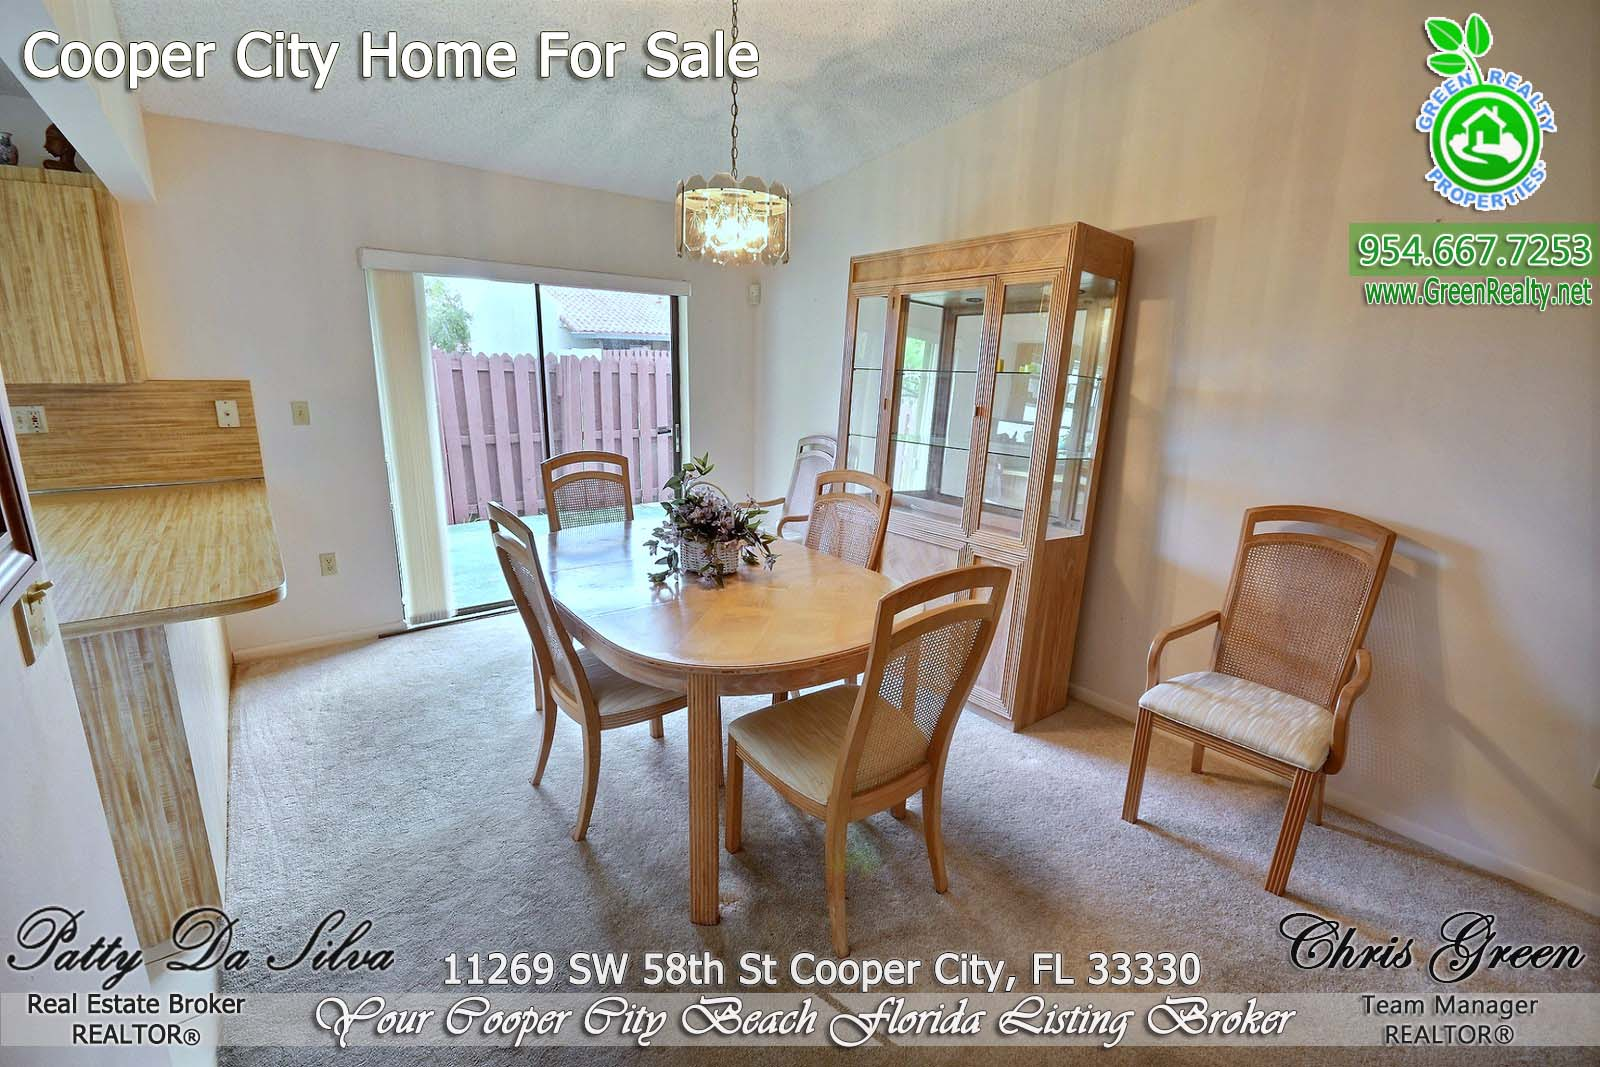 8 Cooper City Real Estate - Villas (13)